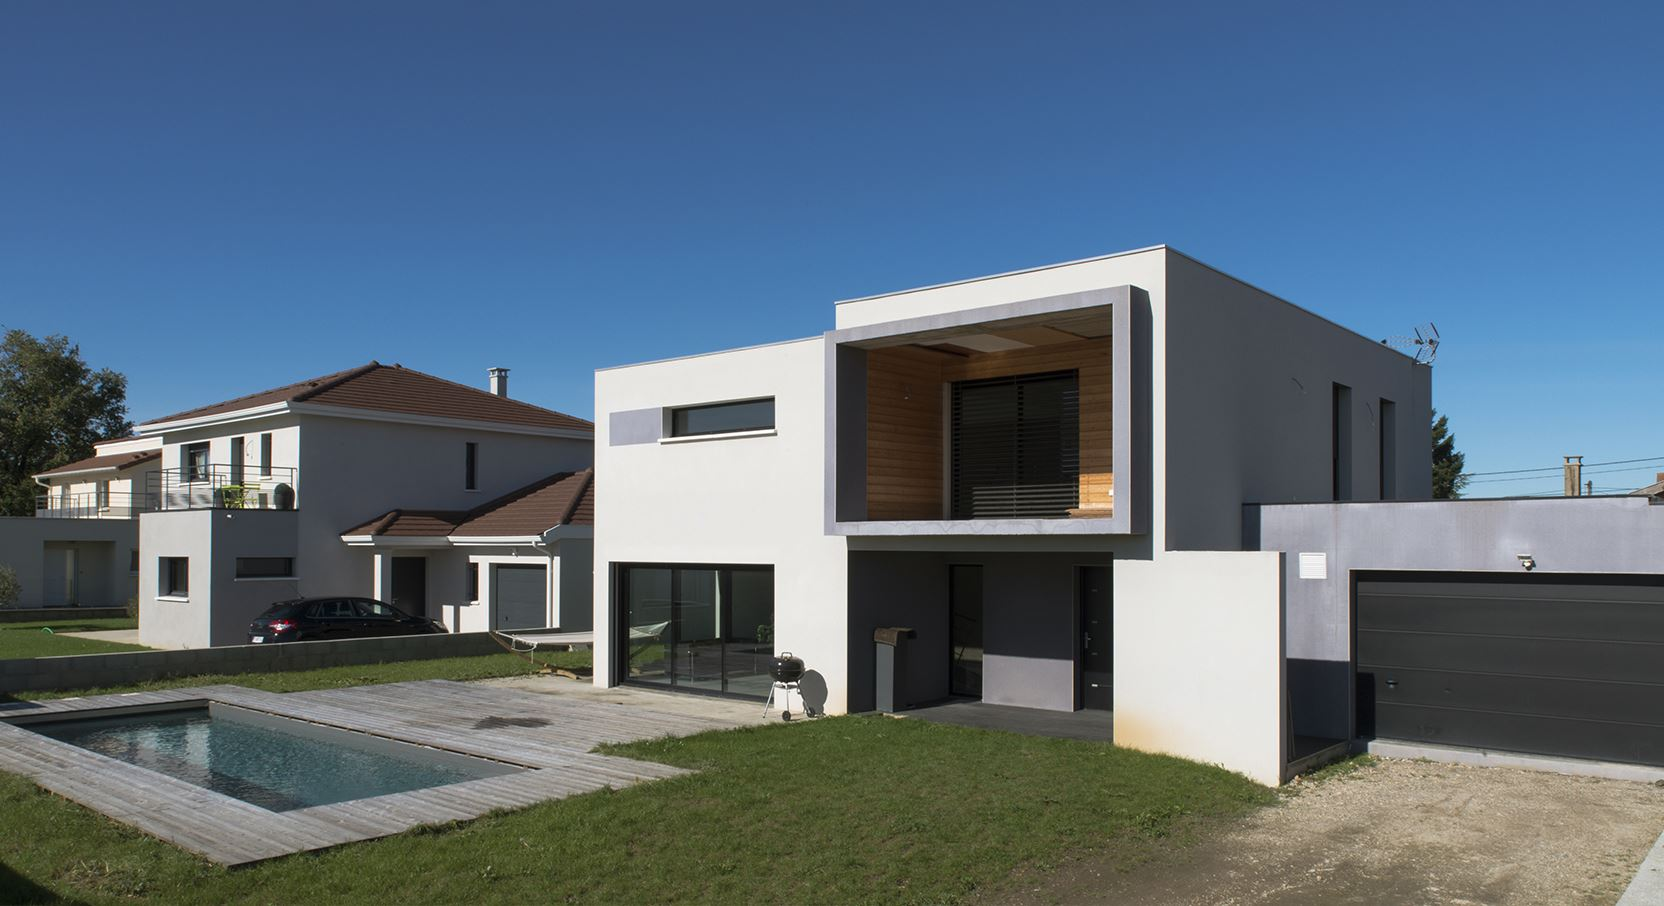 Maison architecte contemporaine mc immo - Plan de maison d architecte ...